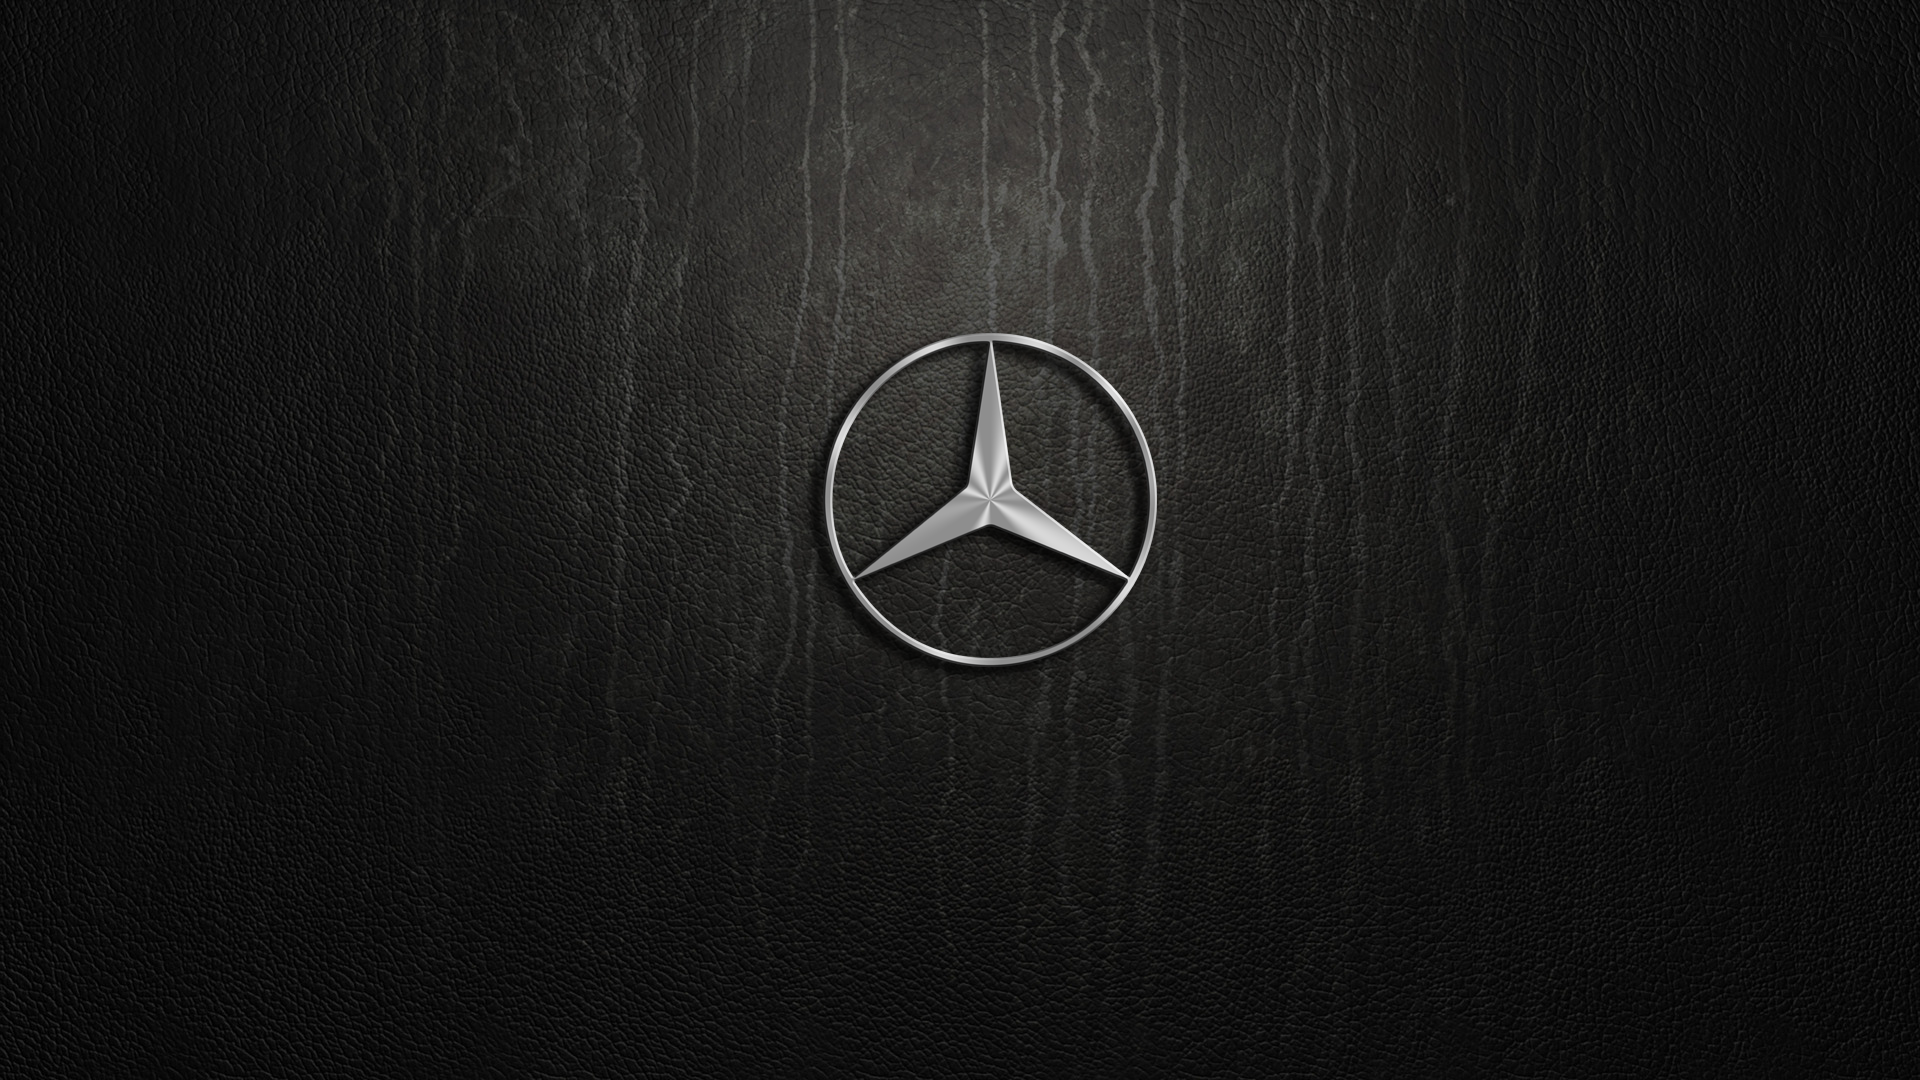 Mercedes logo wallpaper for iphone sdeerwallpaper like mercedes logo wallpaper for iphone sdeerwallpaper voltagebd Image collections